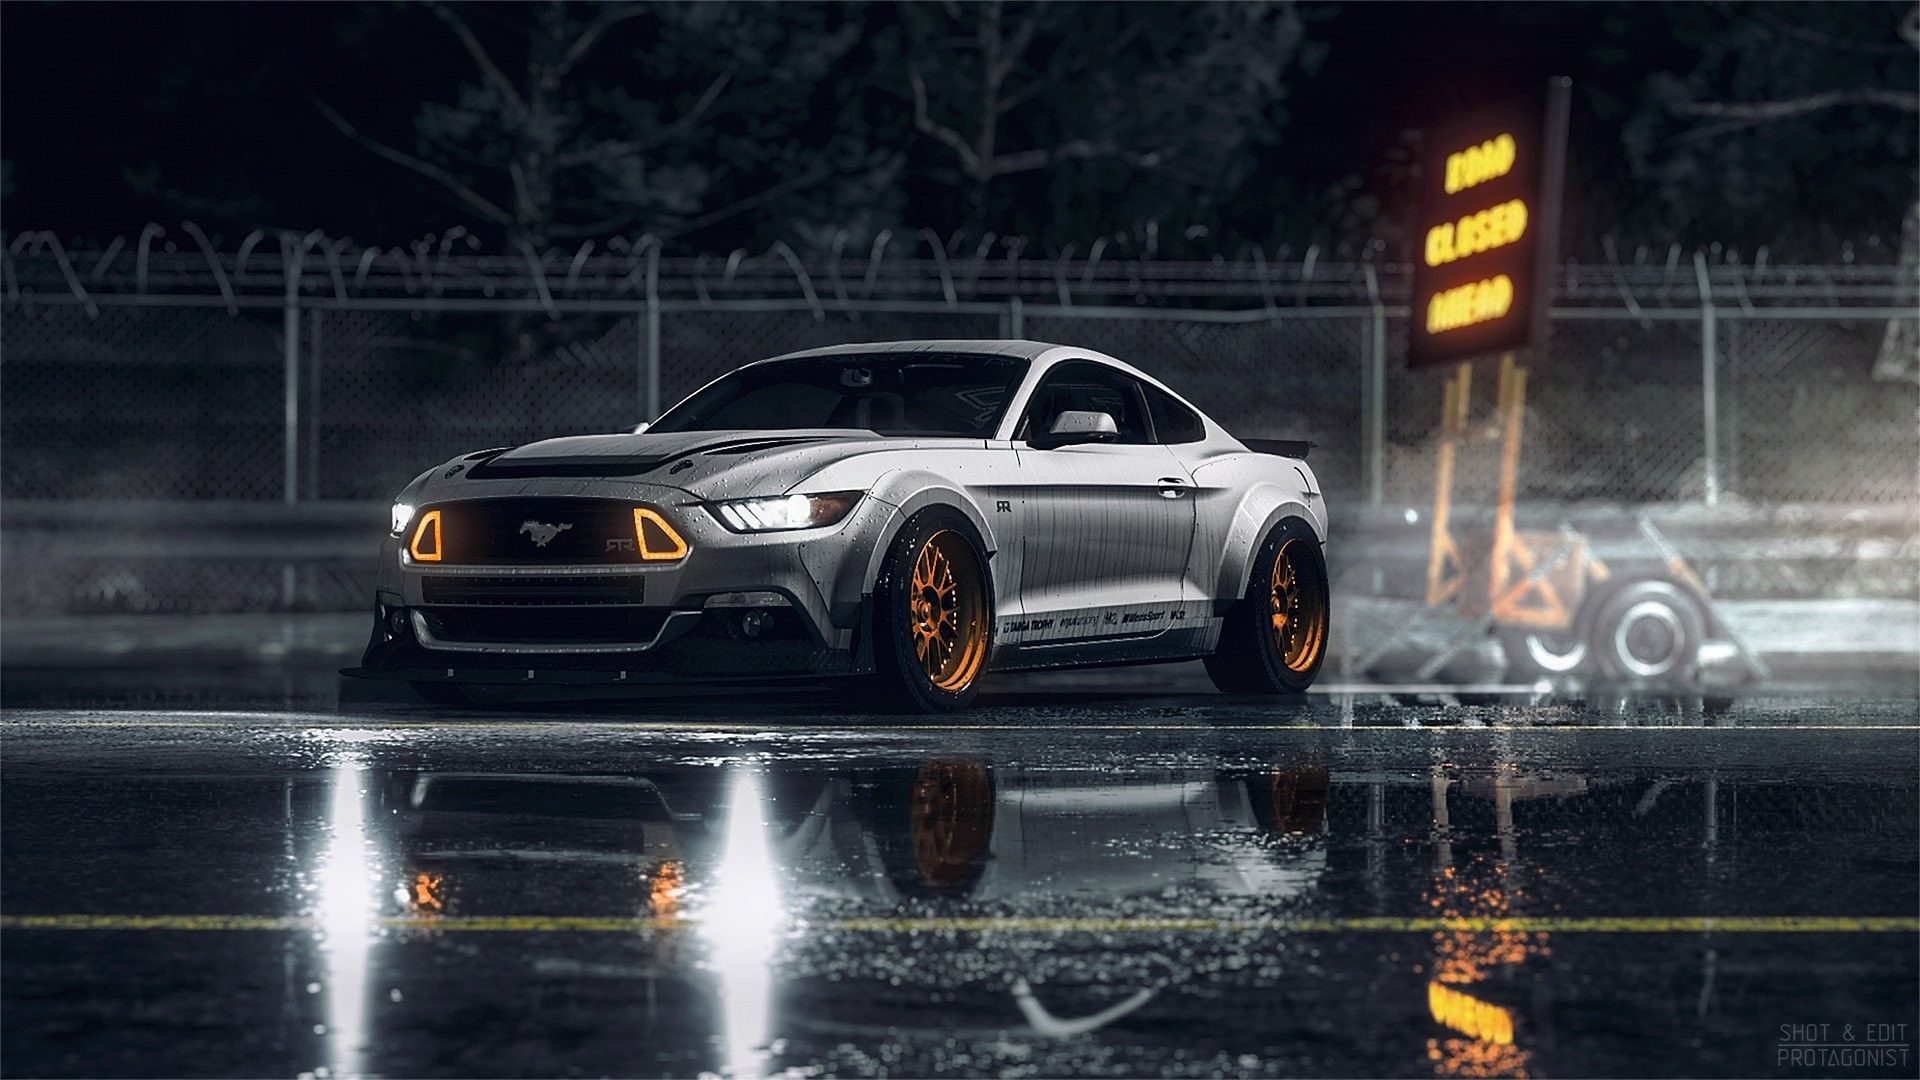 Pin By Gamerplayer544 On Alpha In 2020 Ford Mustang Wallpaper